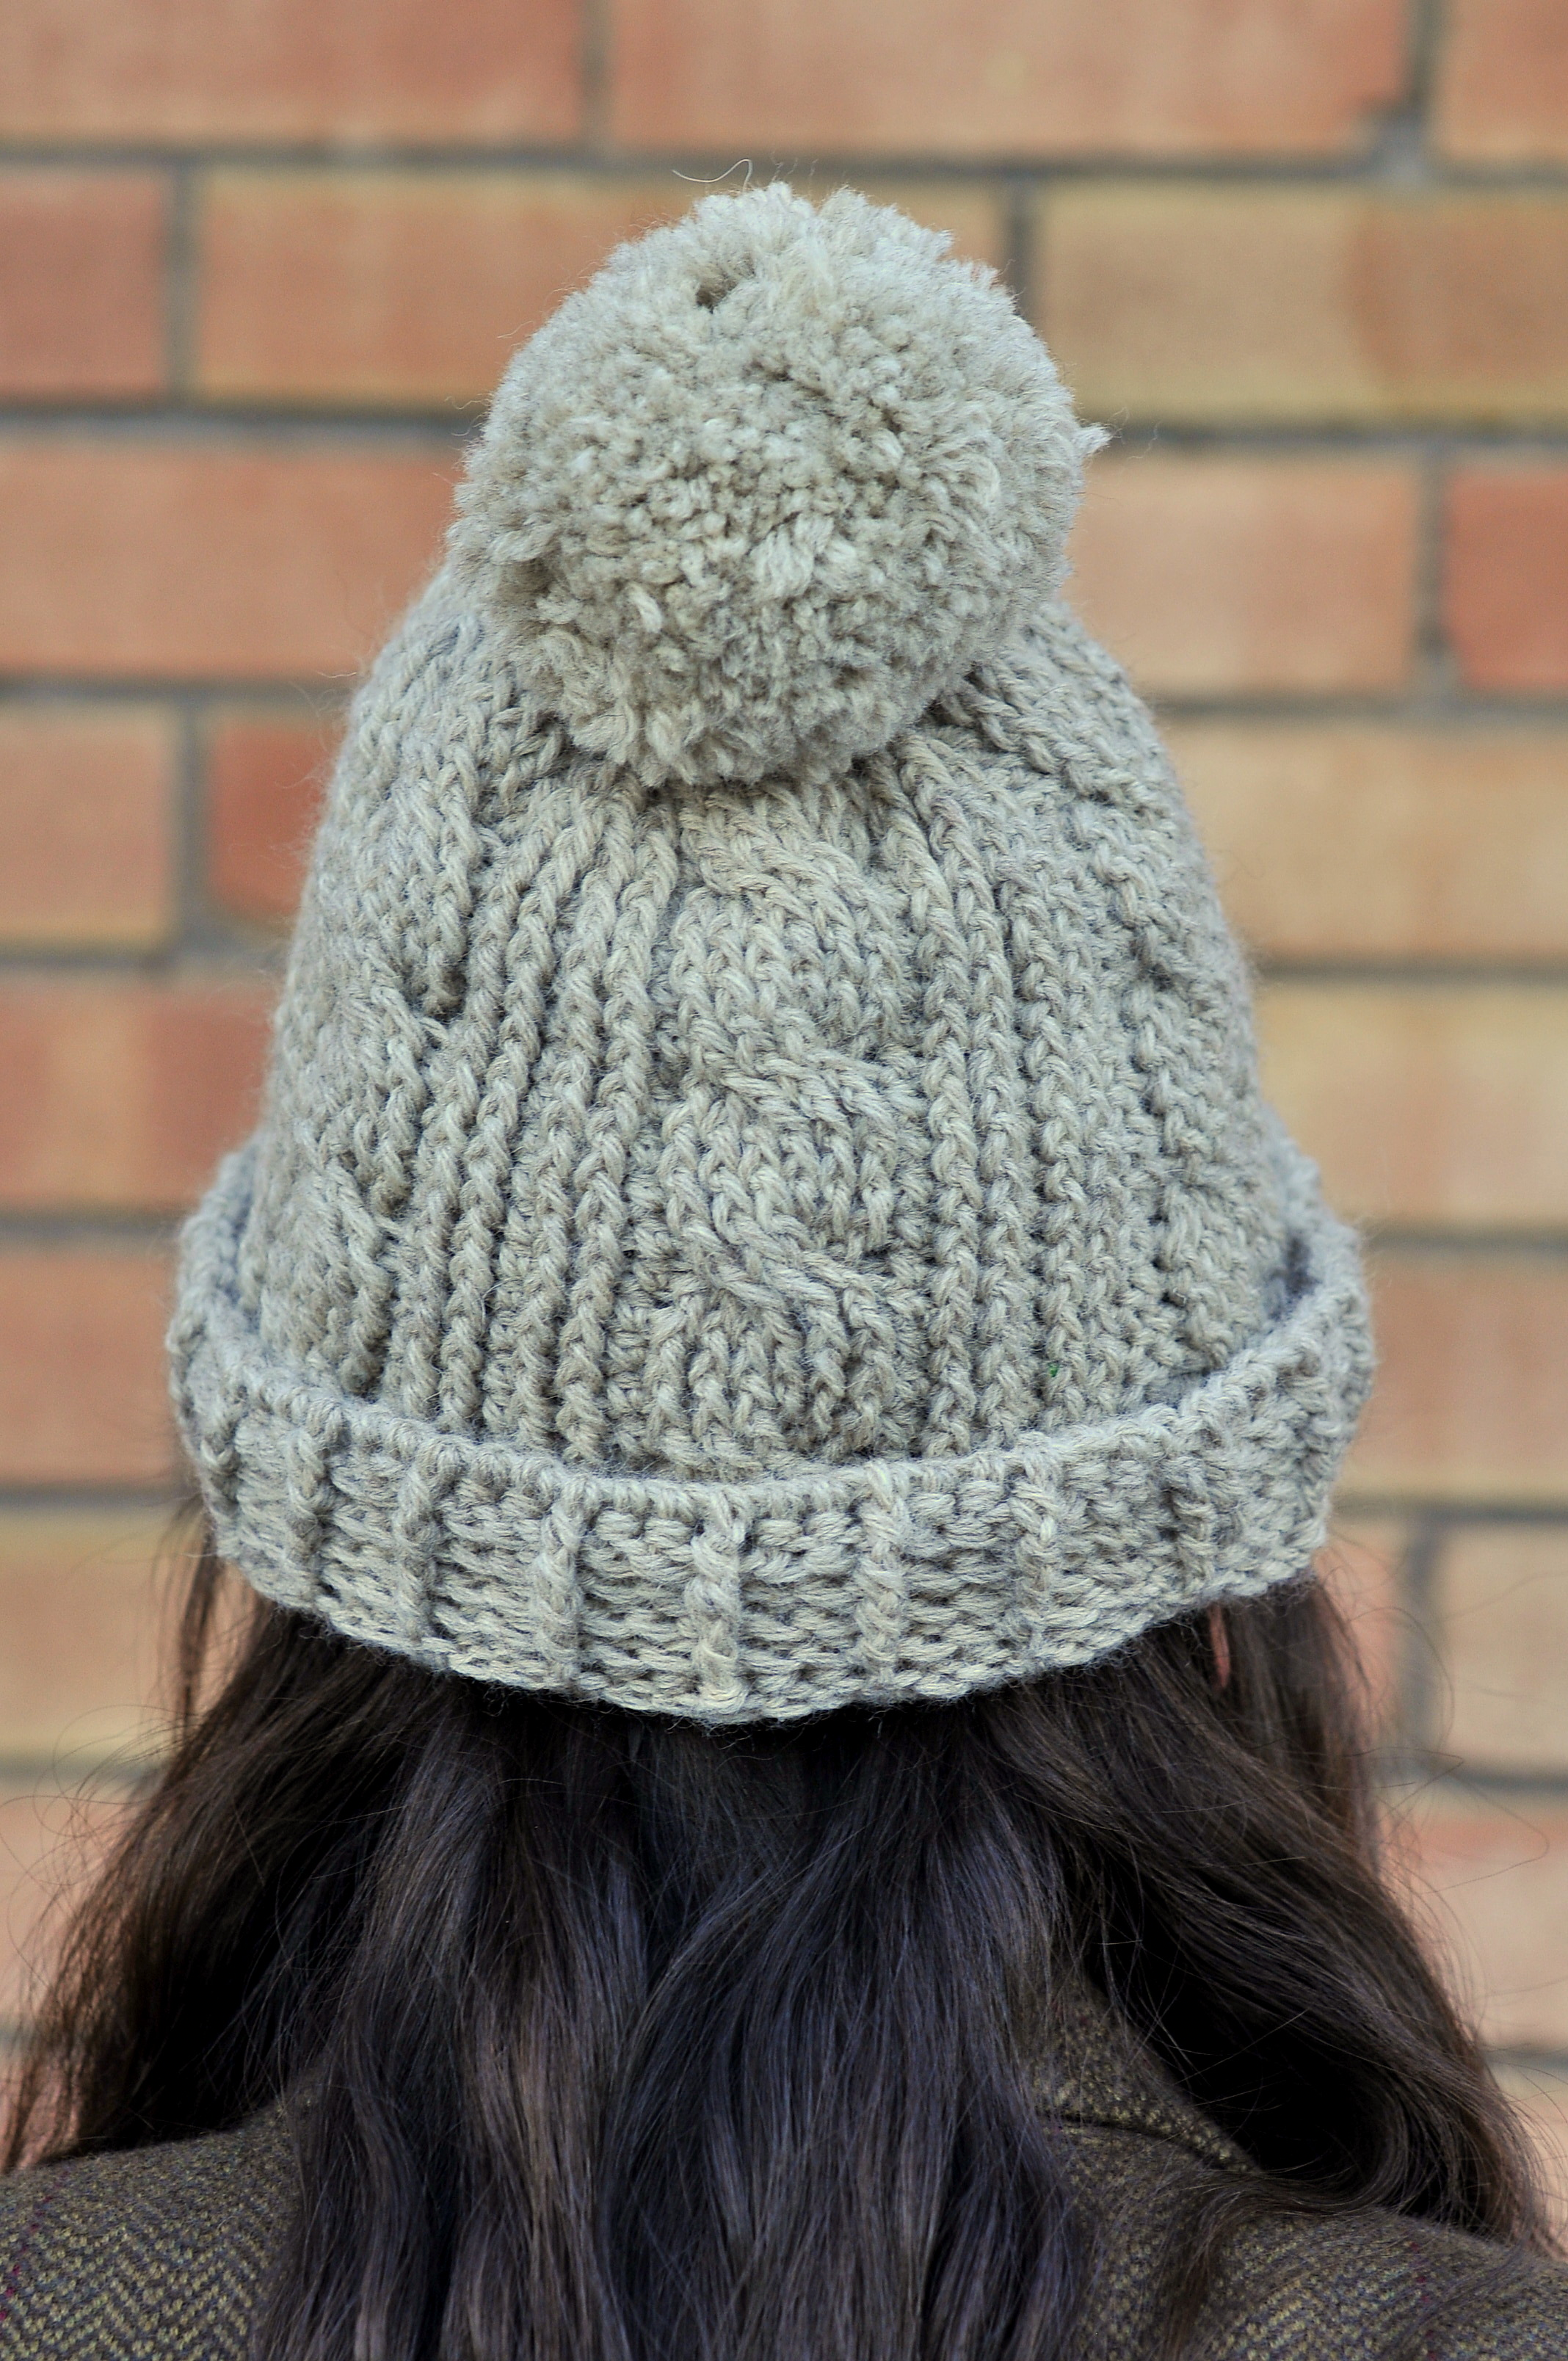 Easy Chunky Crochet Hat Pattern : DIY: Chunky Cabled Crochet Beanie with Free Pattern Kiku ...